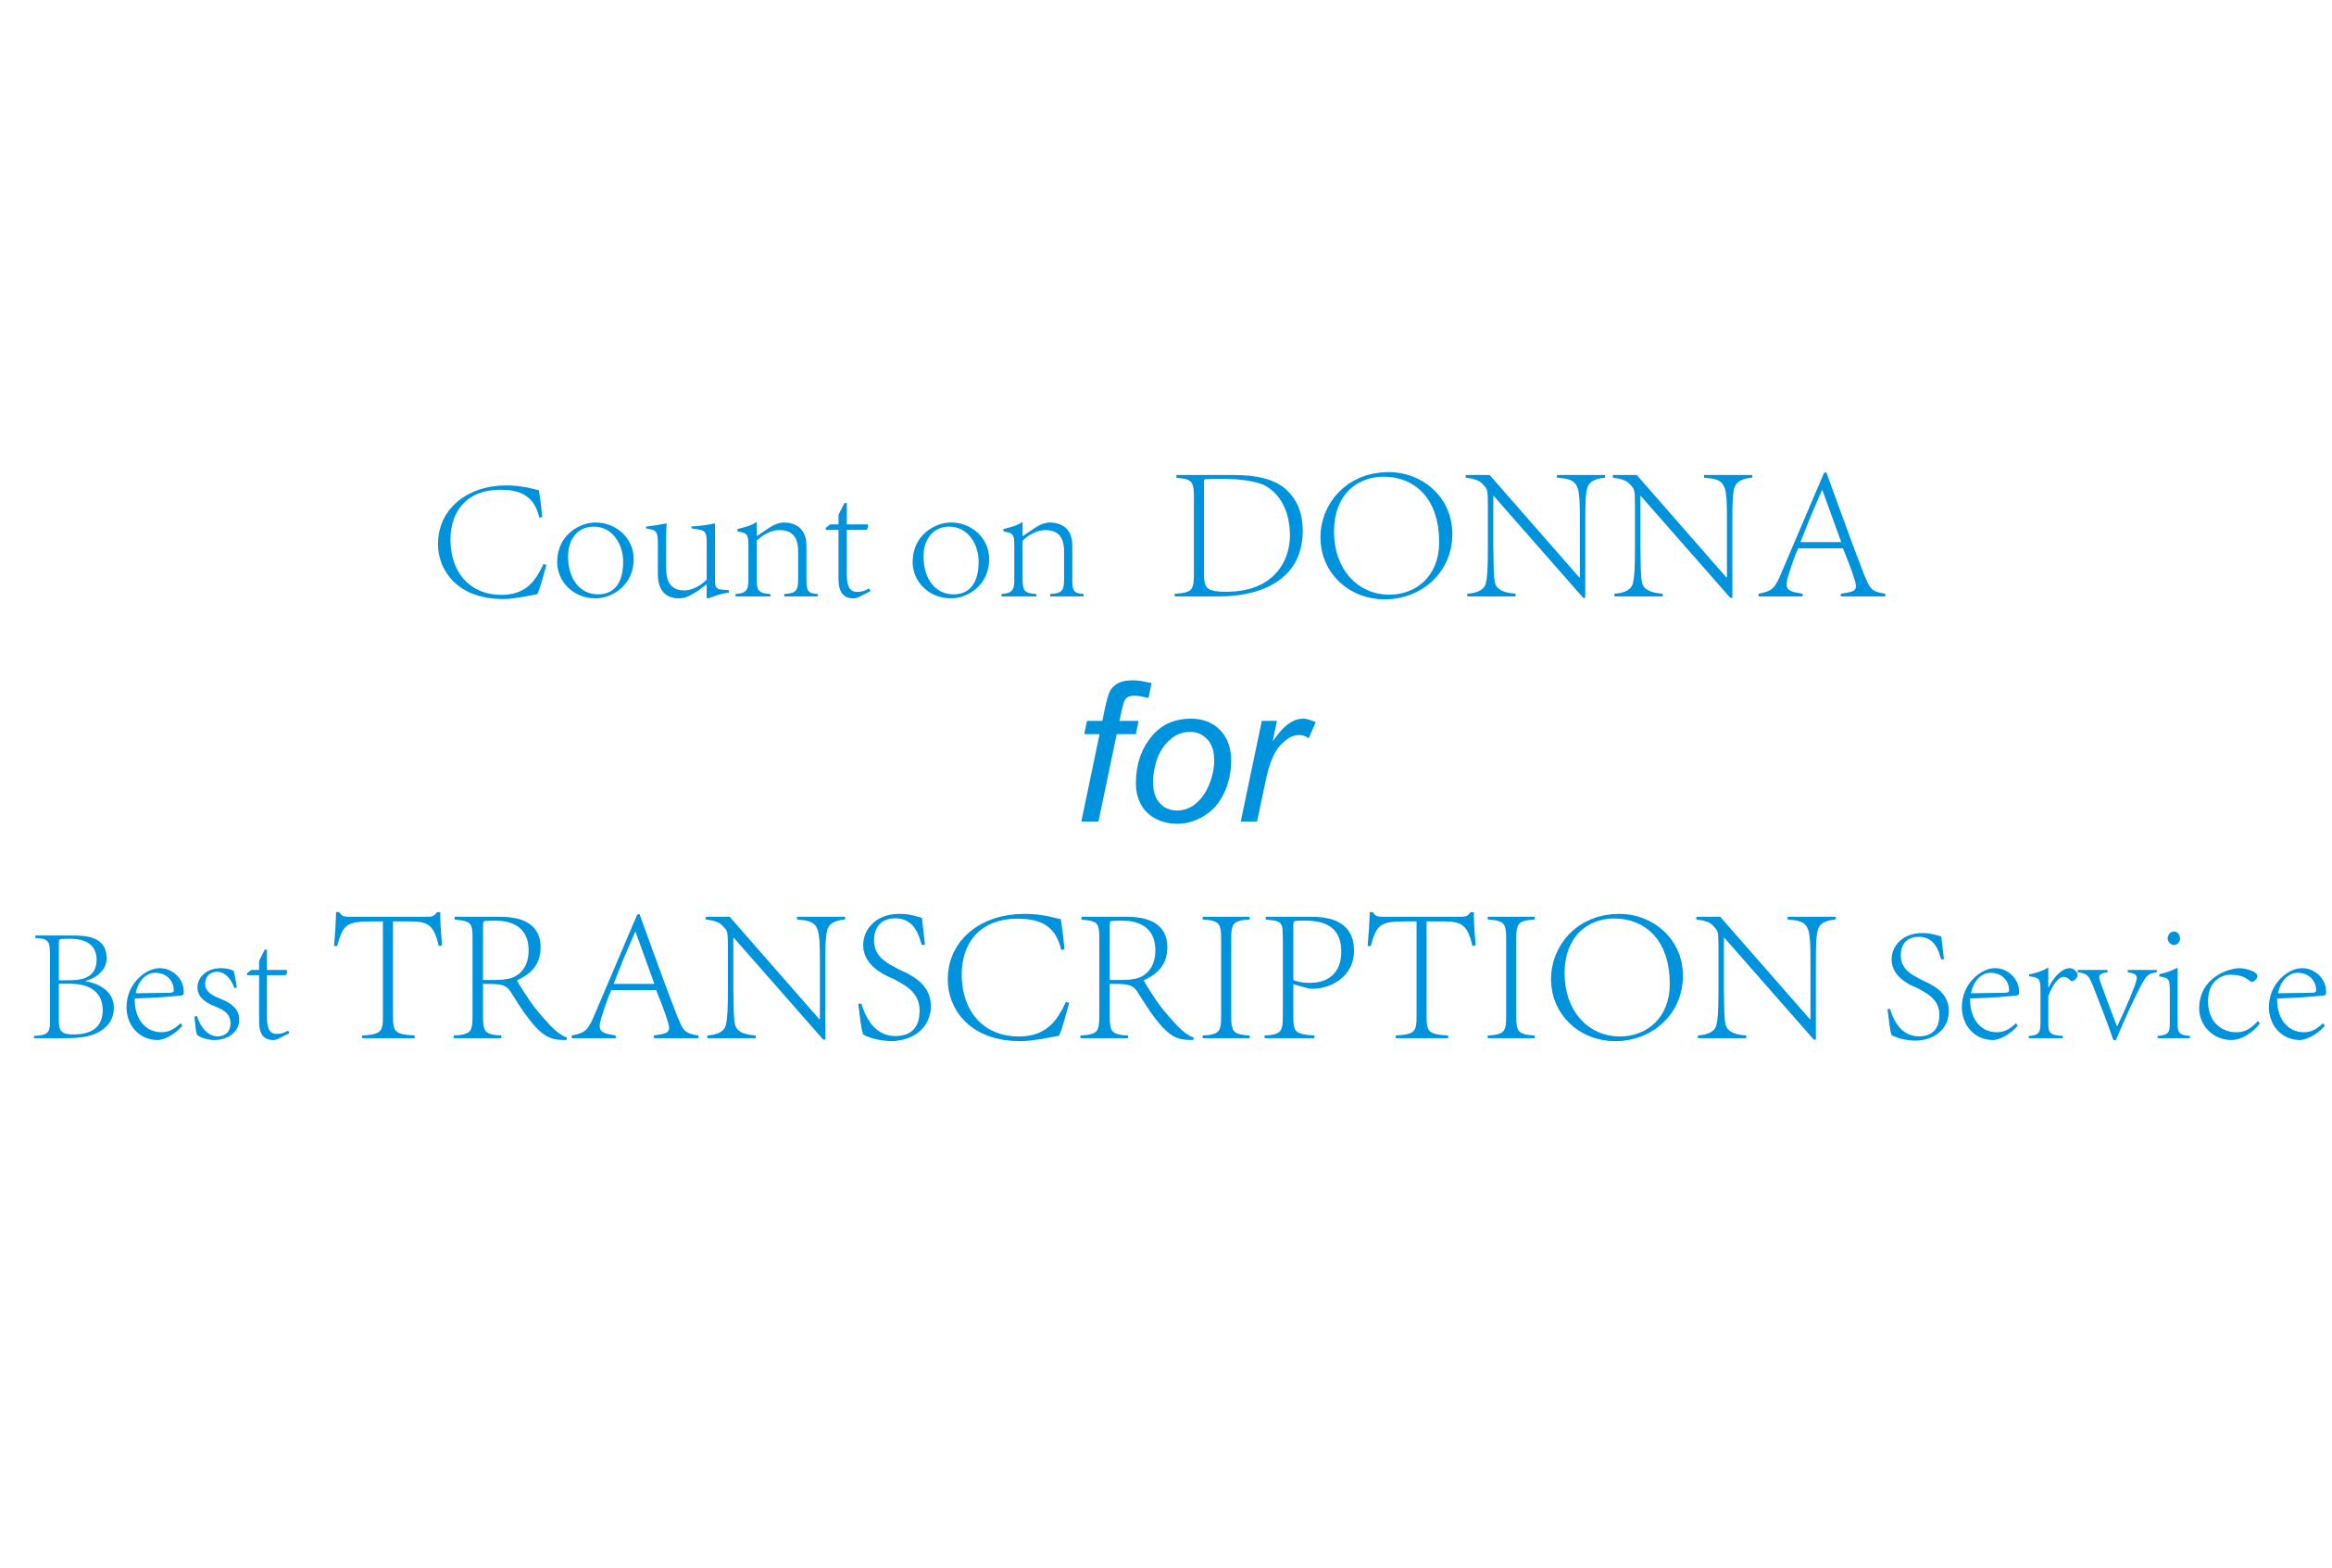 Impeccably do Transcription of any audio or video